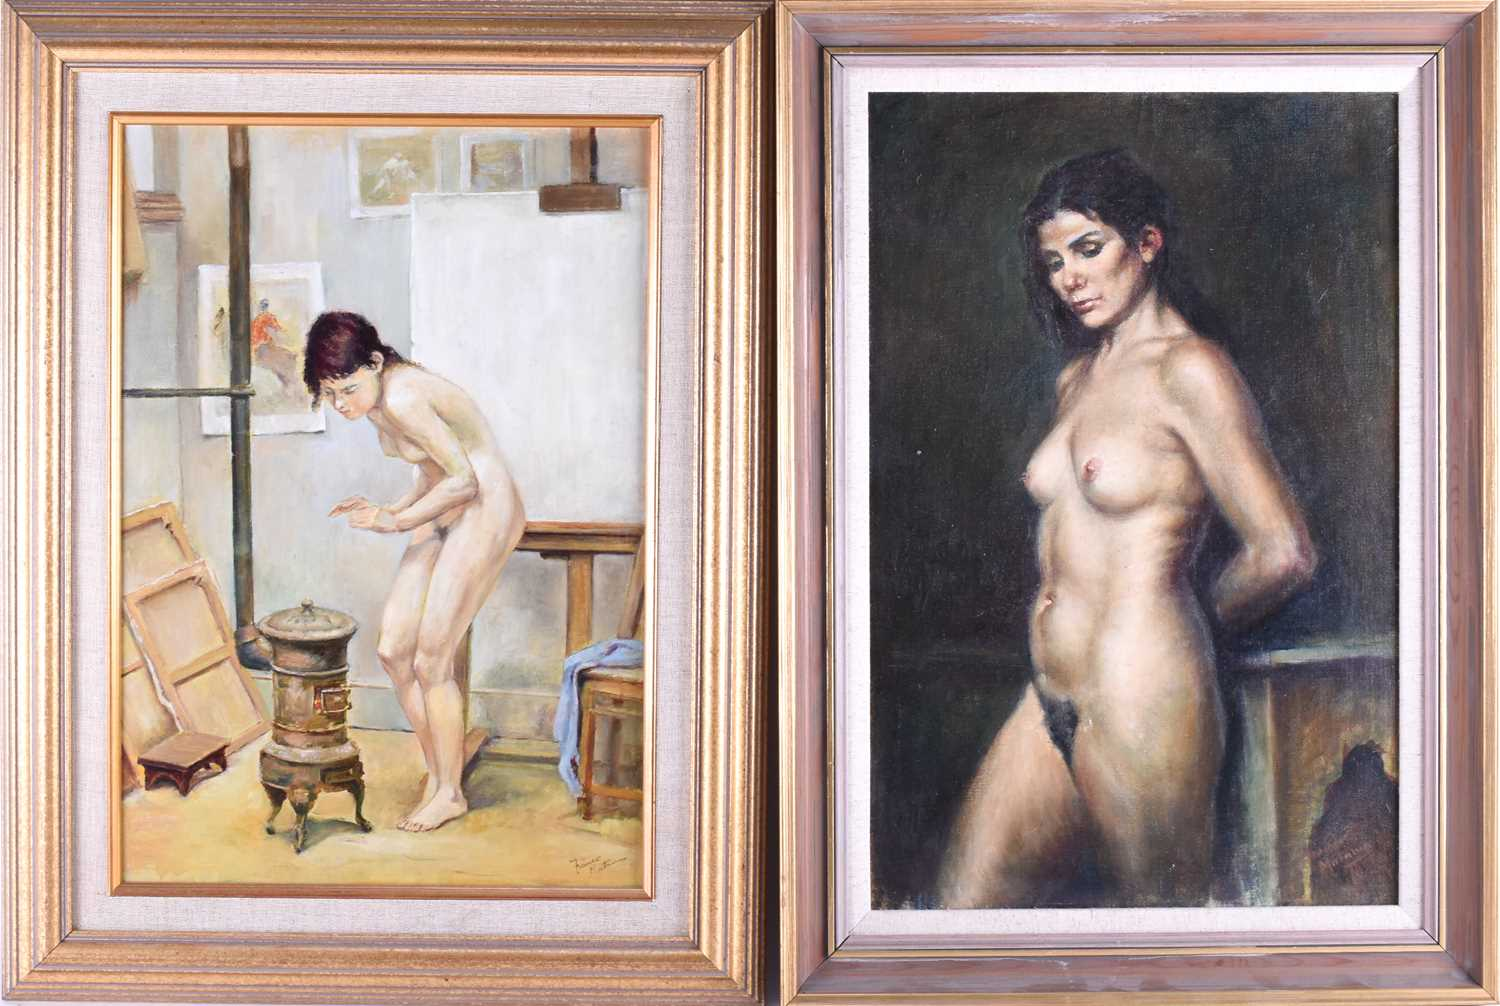 Lot 10 - Franco Matania (1922-2006) Italian/British, a portrait of a nude woman standing against a Morrocan